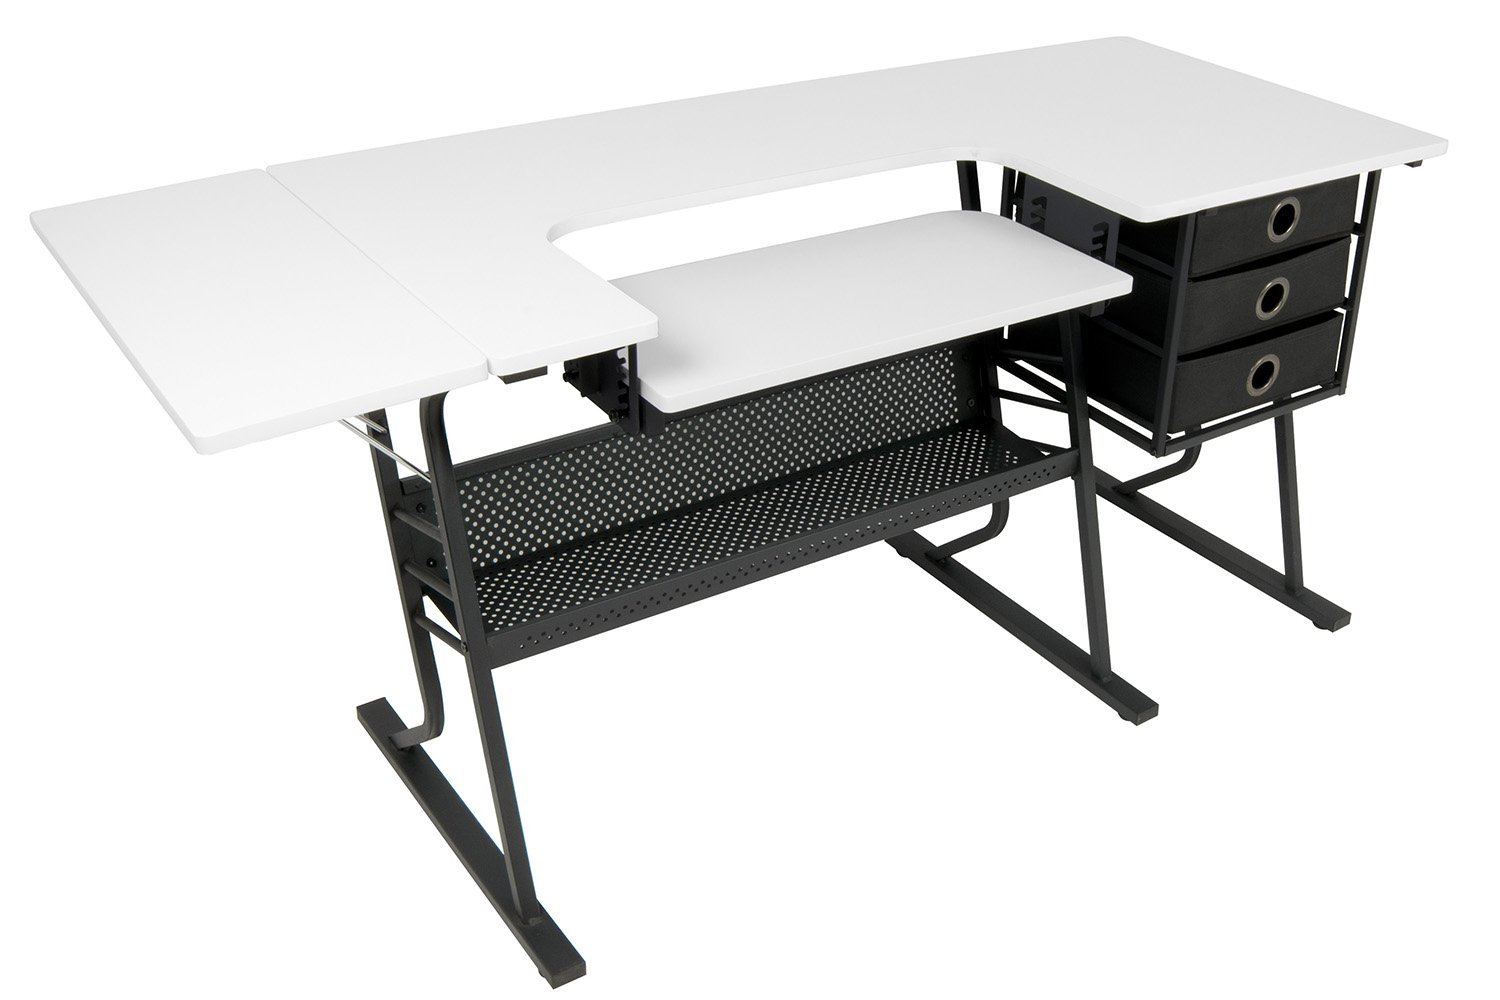 Best sewing table: This can be the right fit for you if you're looking for convenience